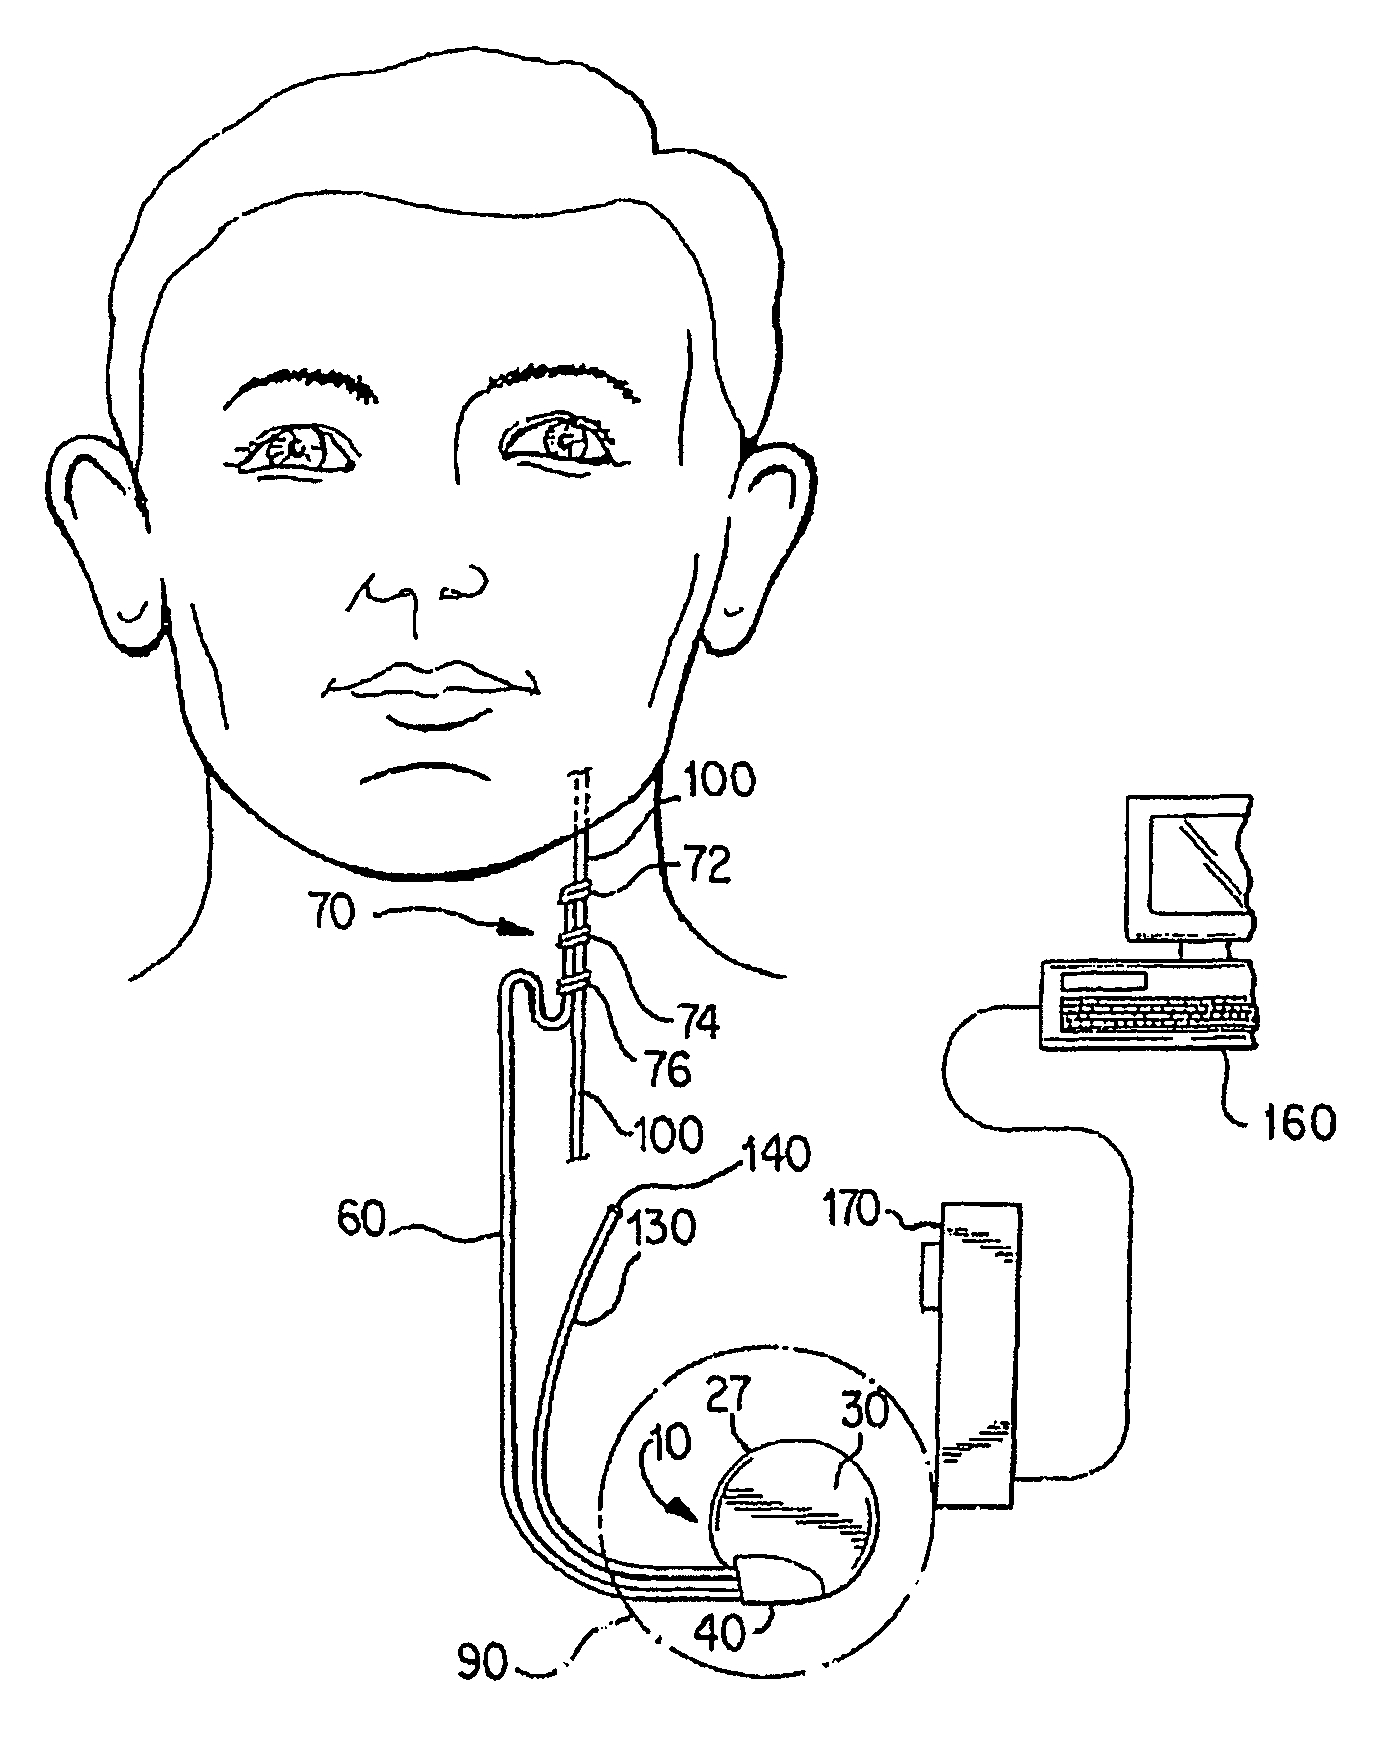 Cranial Nerve Face Drawing With Numbers at GetDrawings